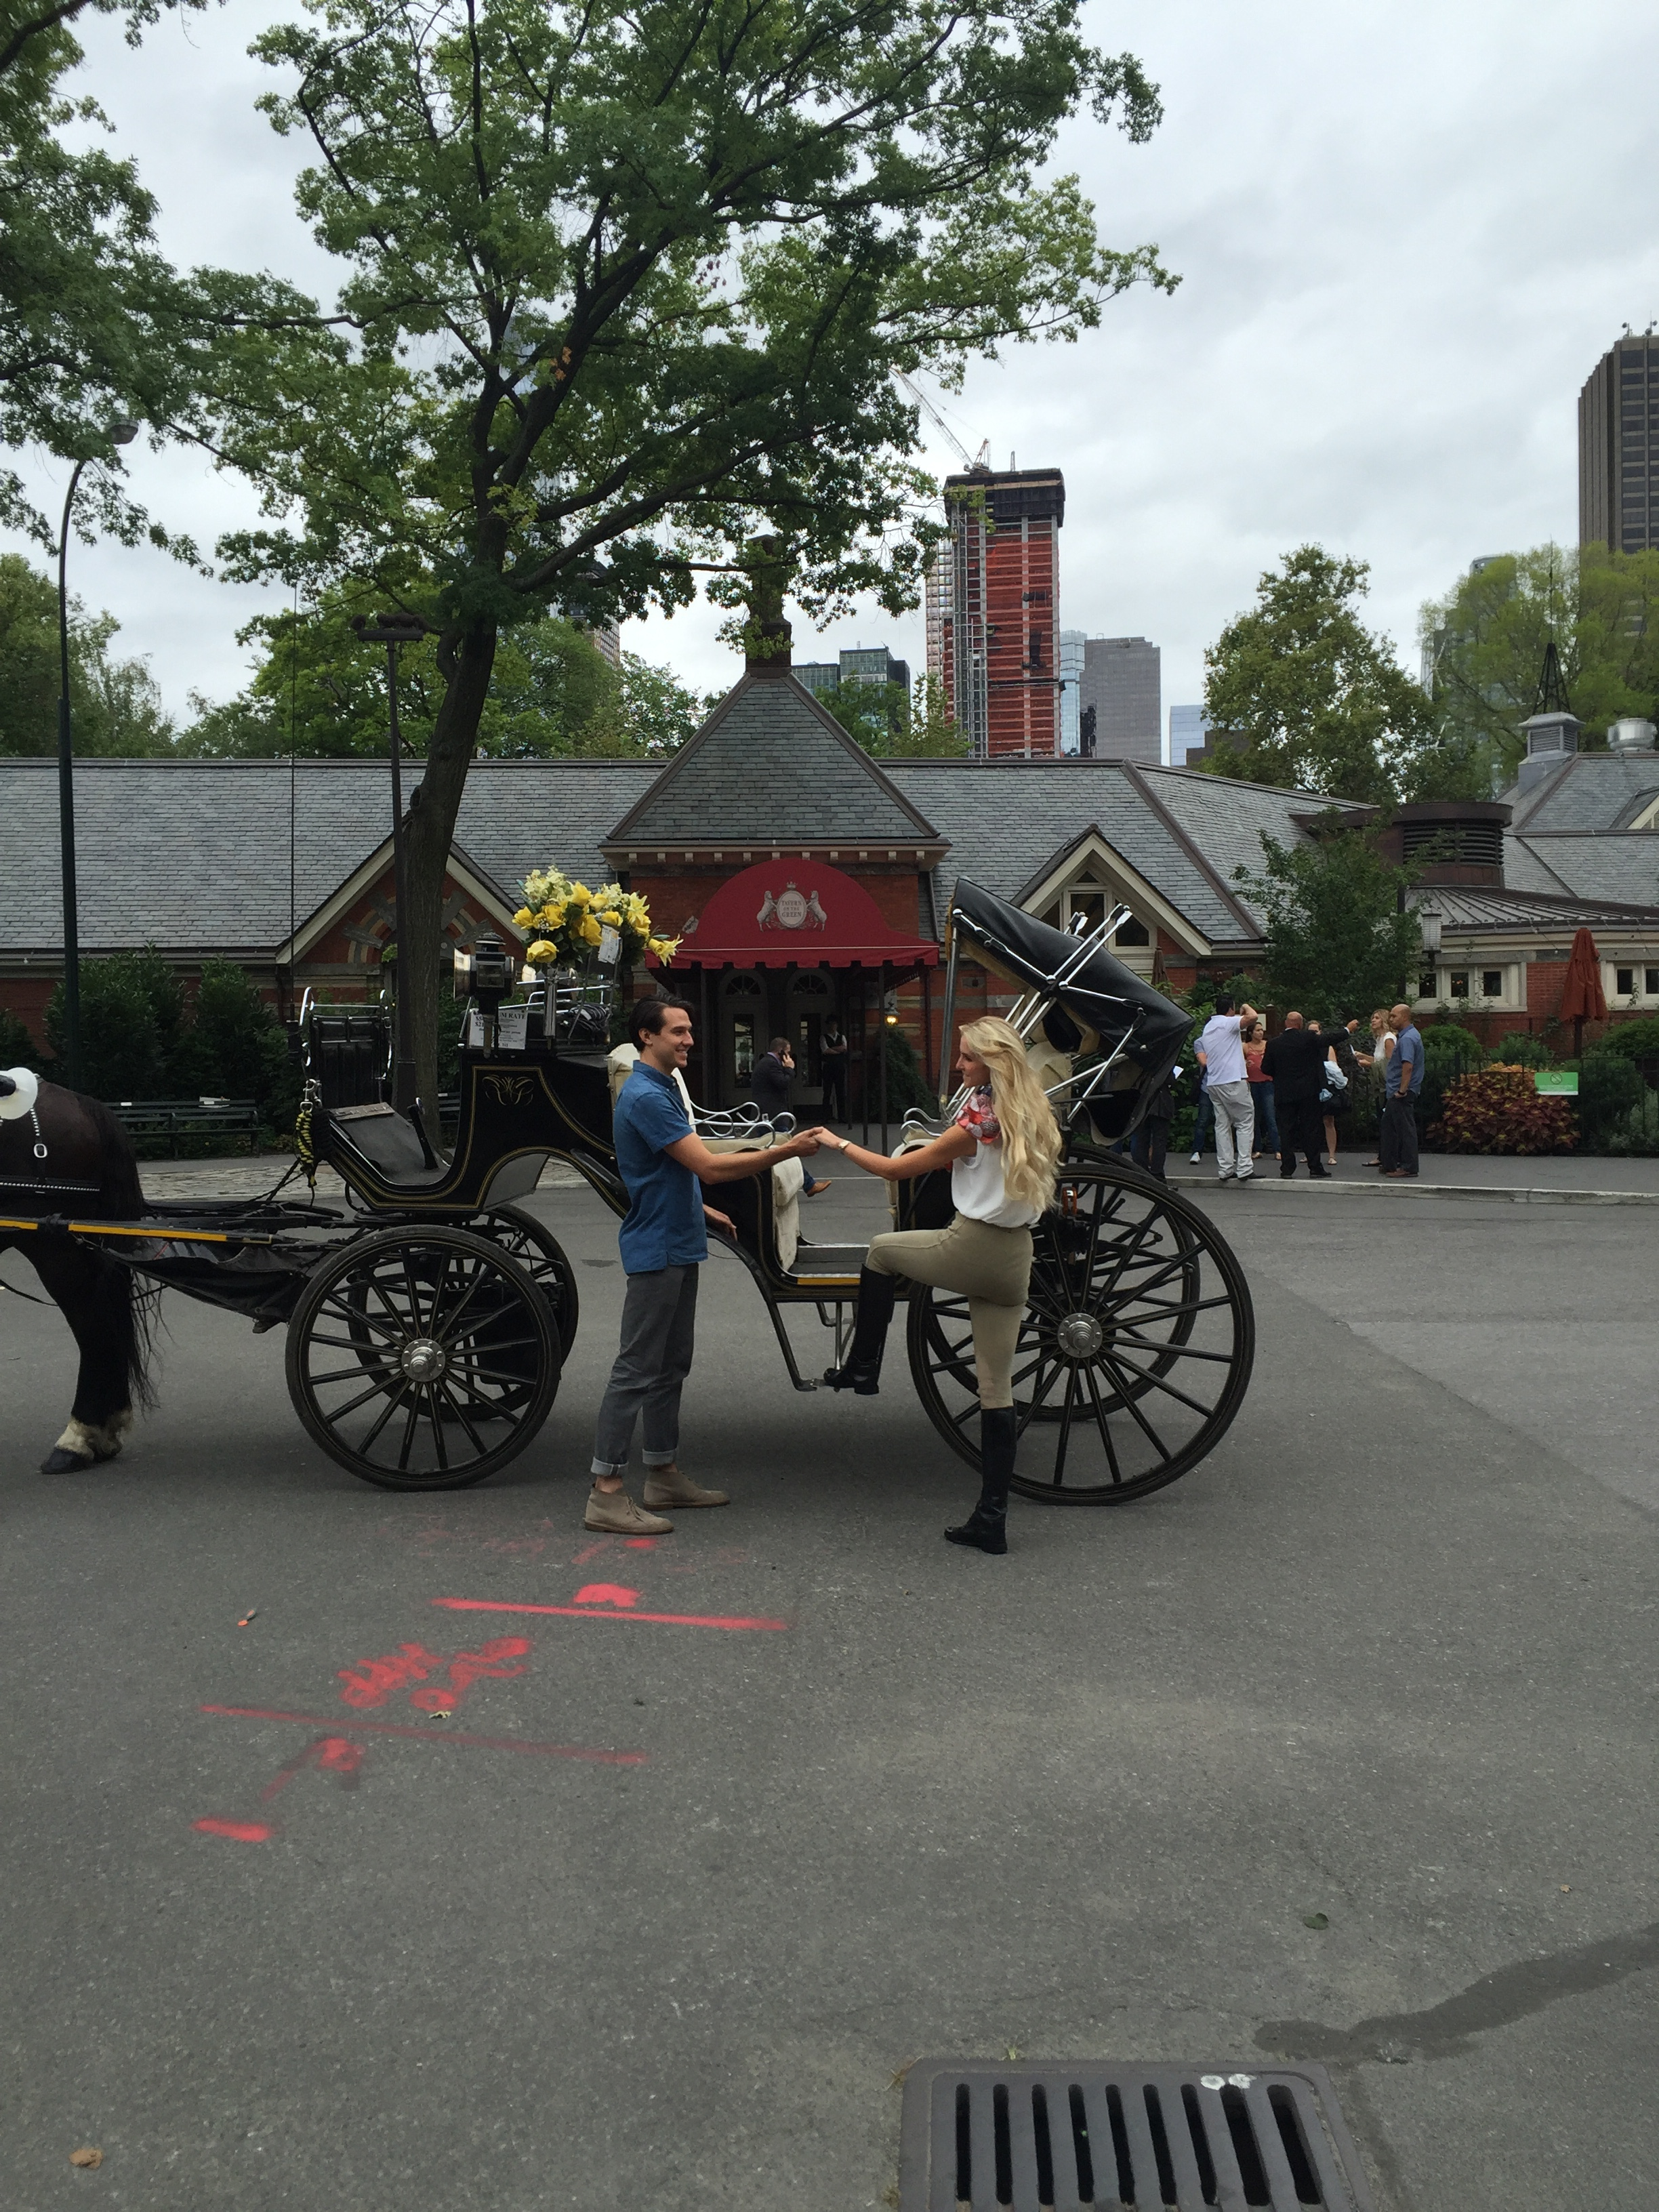 Ride in a horse drawn carriage in Center Park